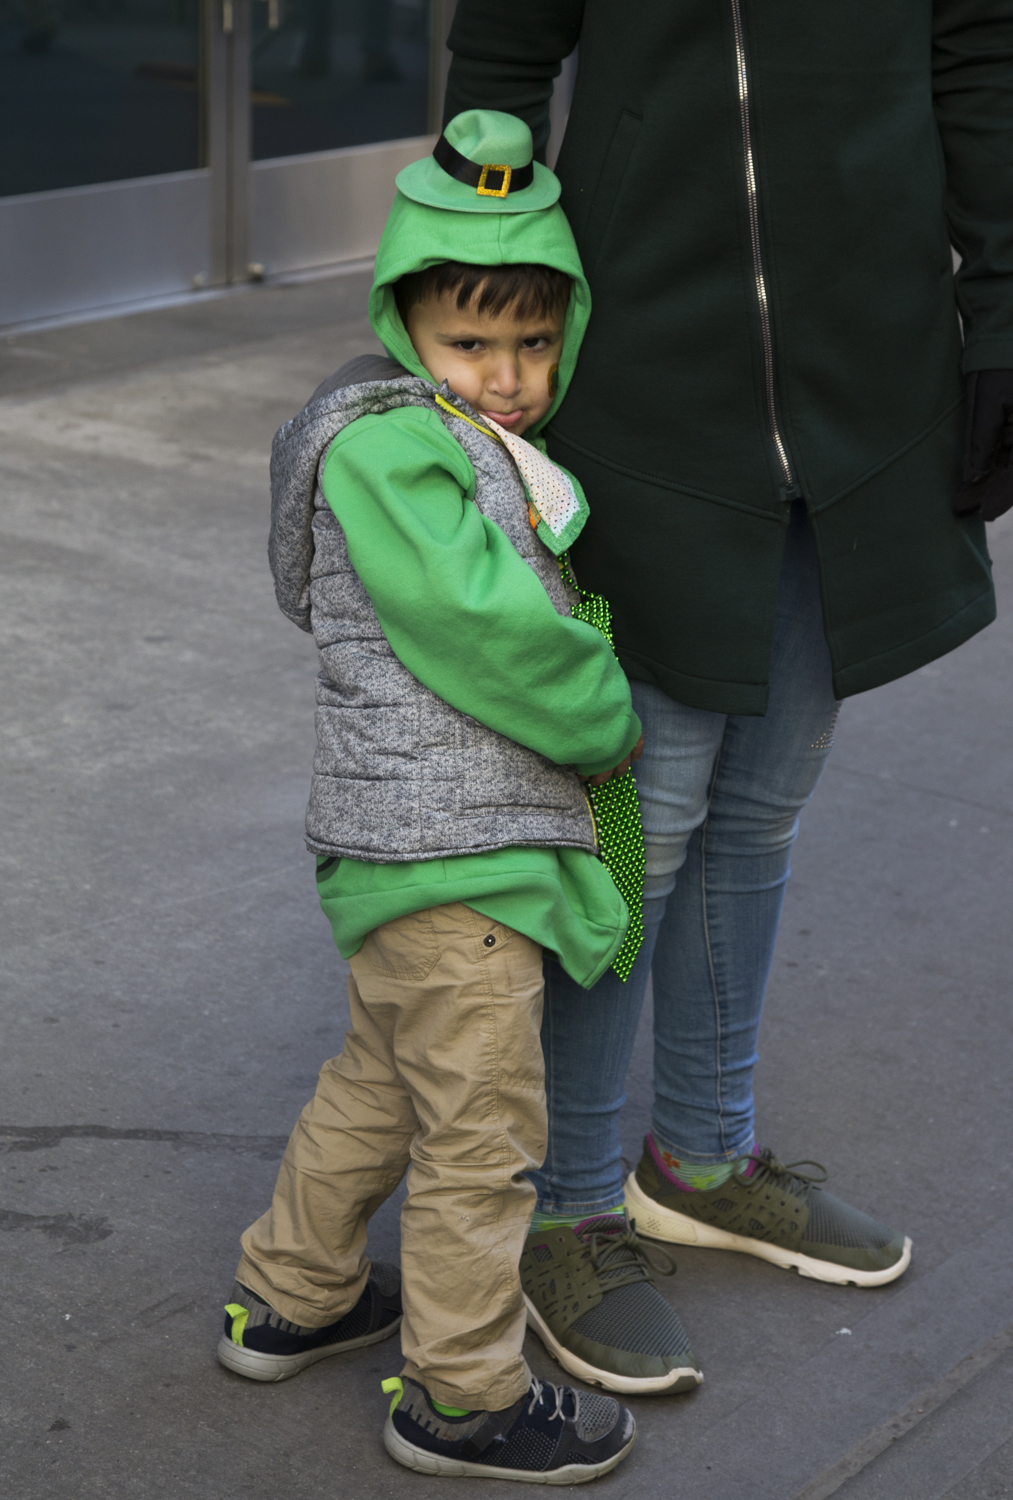 Amir Ramjohn, 4, from Stormville pouts at the 2018 St. Patrick's Day Parade in Manhattan. (Staten Island Advance/Shira Stoll)